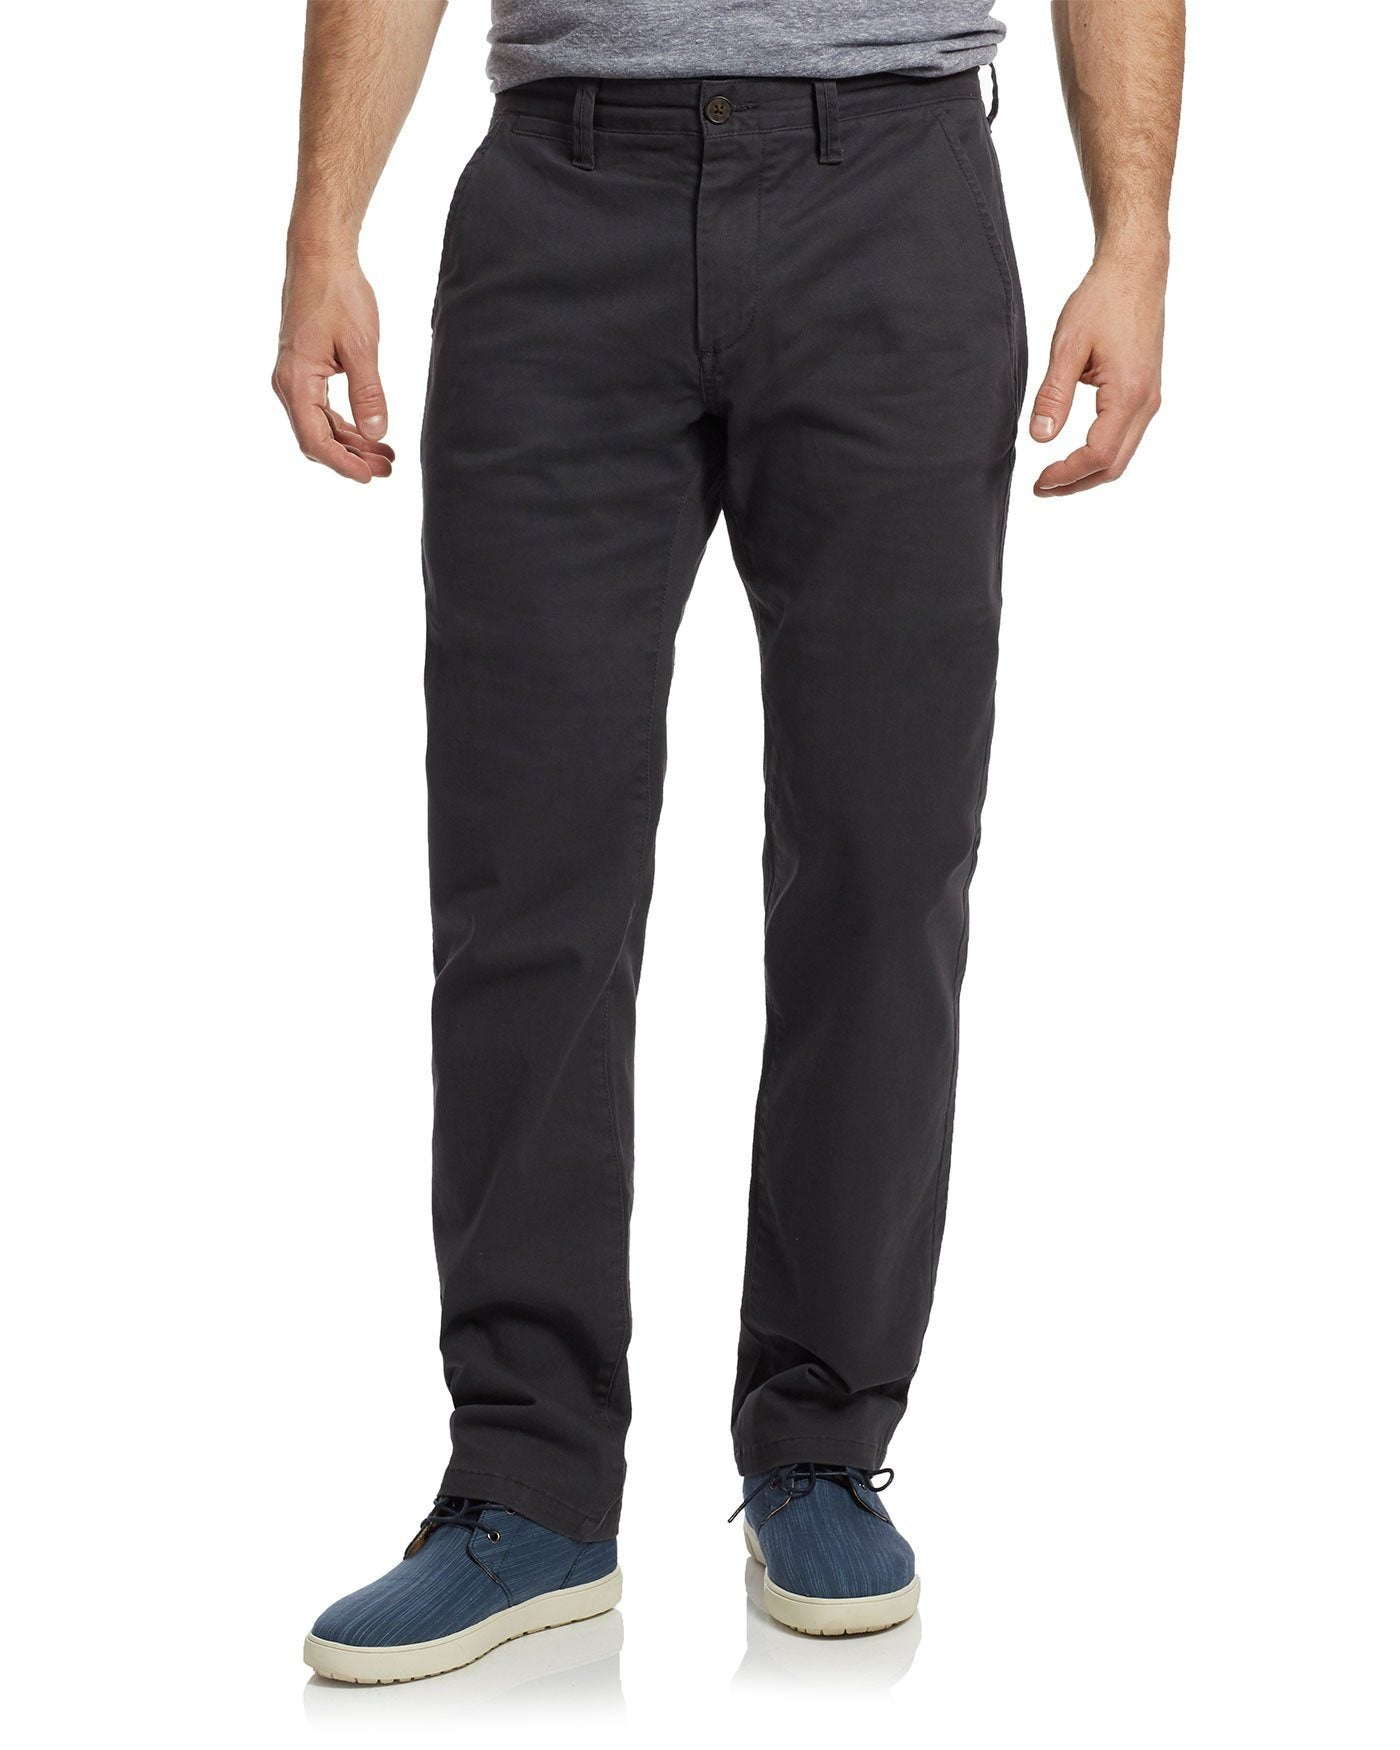 CASTLETON CHINO - PORTLAND RELAXED - CHARCOAL